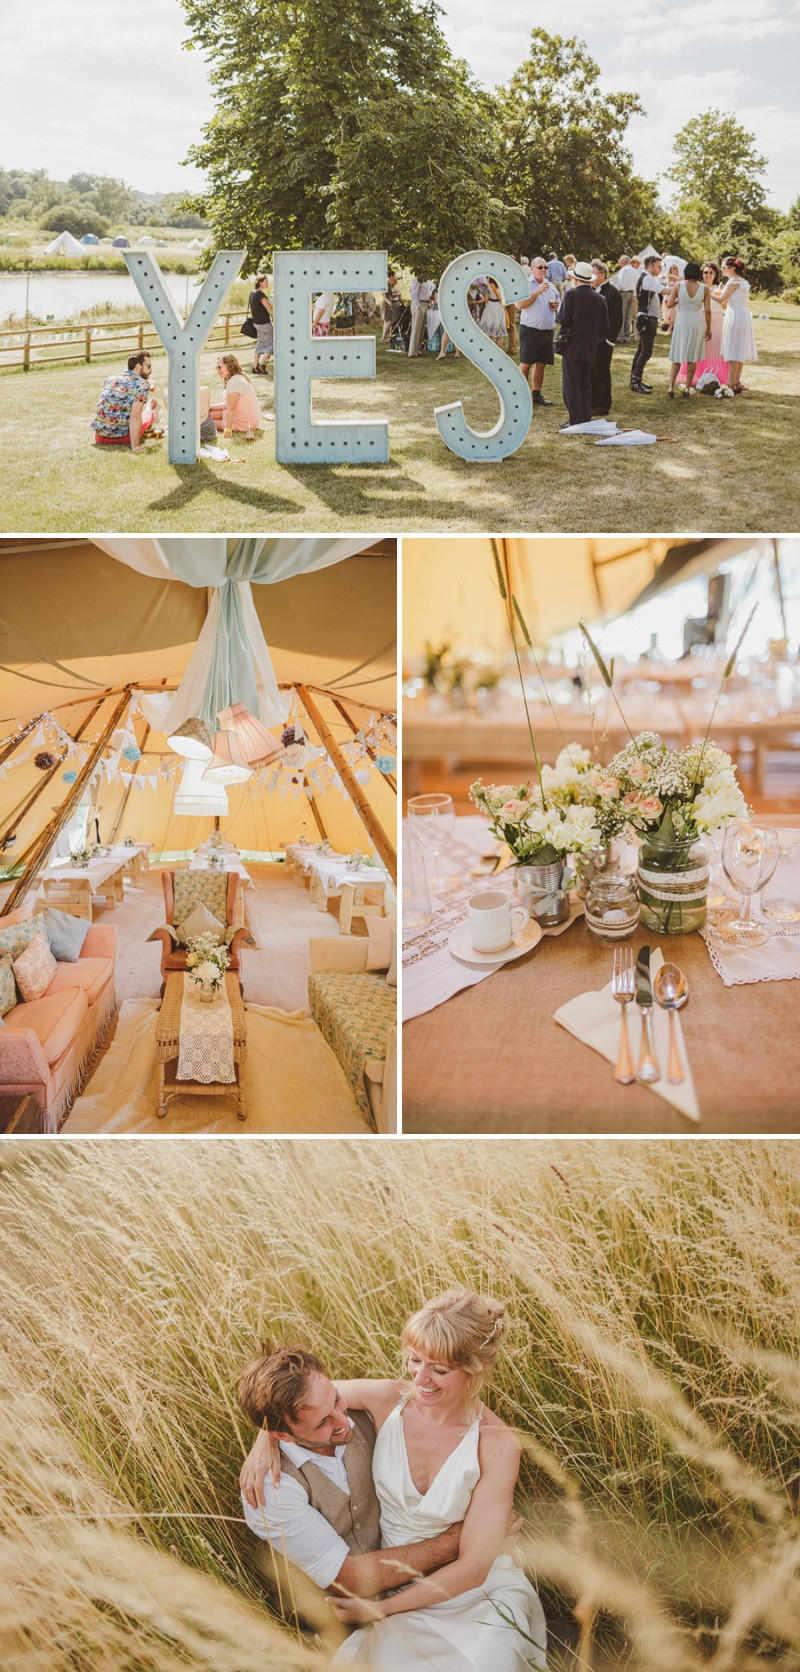 An Epic DIY Bohemian Wedding At Ratfyn Farm With A Jenny Packham Dress And A Humanist Ceremony And A Peach Colour Scheme Photographed By Ed Peers._0007